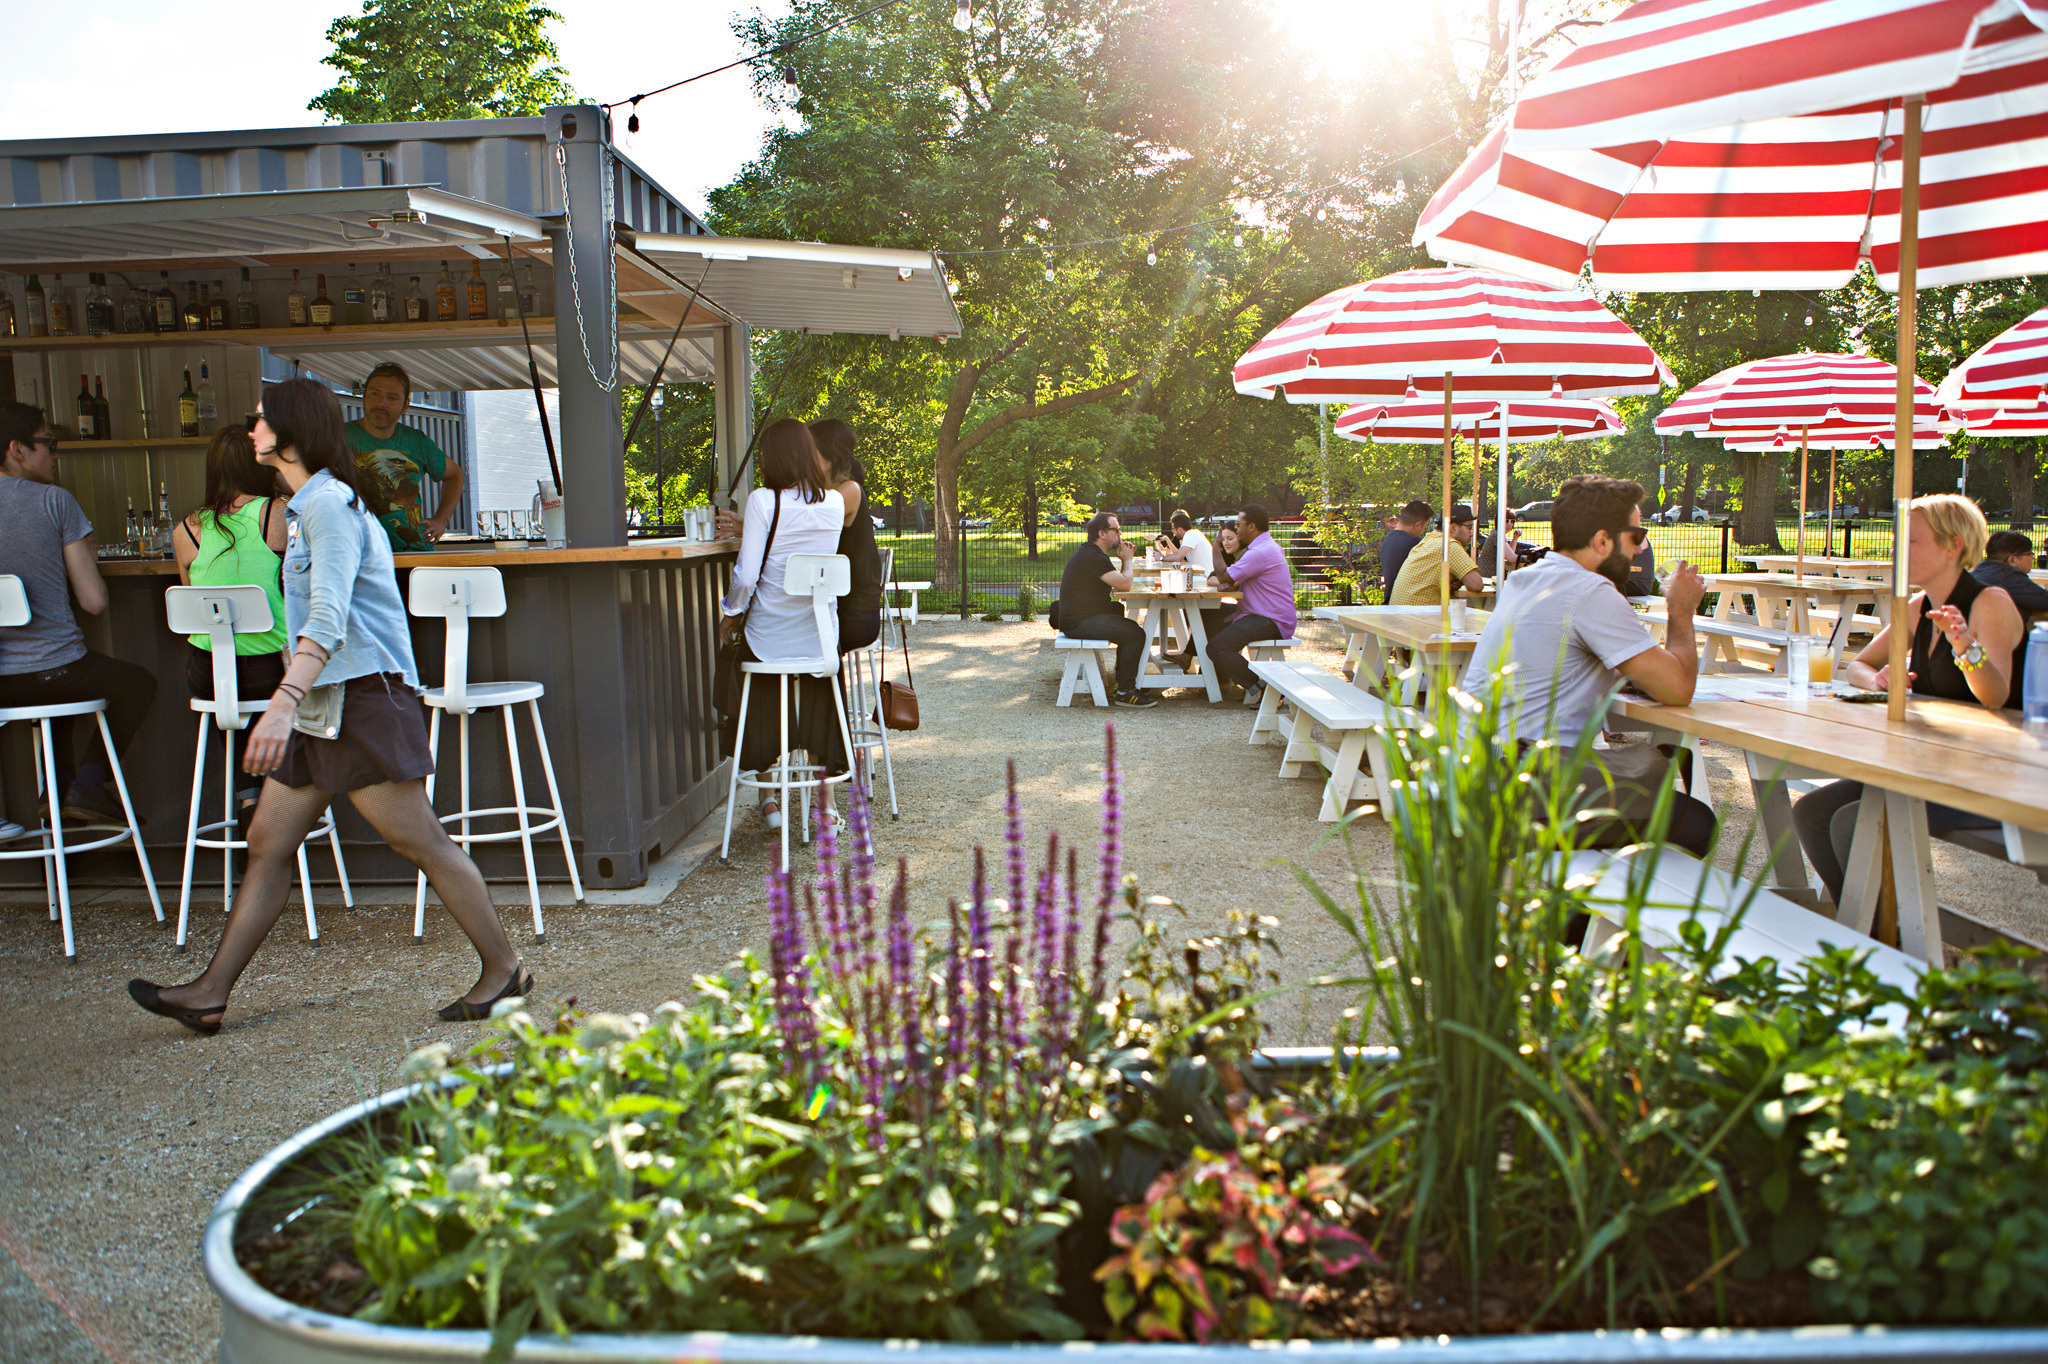 Best Outdoor Restaurants, Patios And Cafes In Chicago. Building A Patio With Natural Stone. Dynamic Porch And Patio. Concrete Patio Construction Design. Outside Christmas Decorating Ideas Patio. Install Patio Paver Edging. Cheap Patio Or Deck Ideas. Outdoor Patio Furniture Nashville. Home Patio Cost